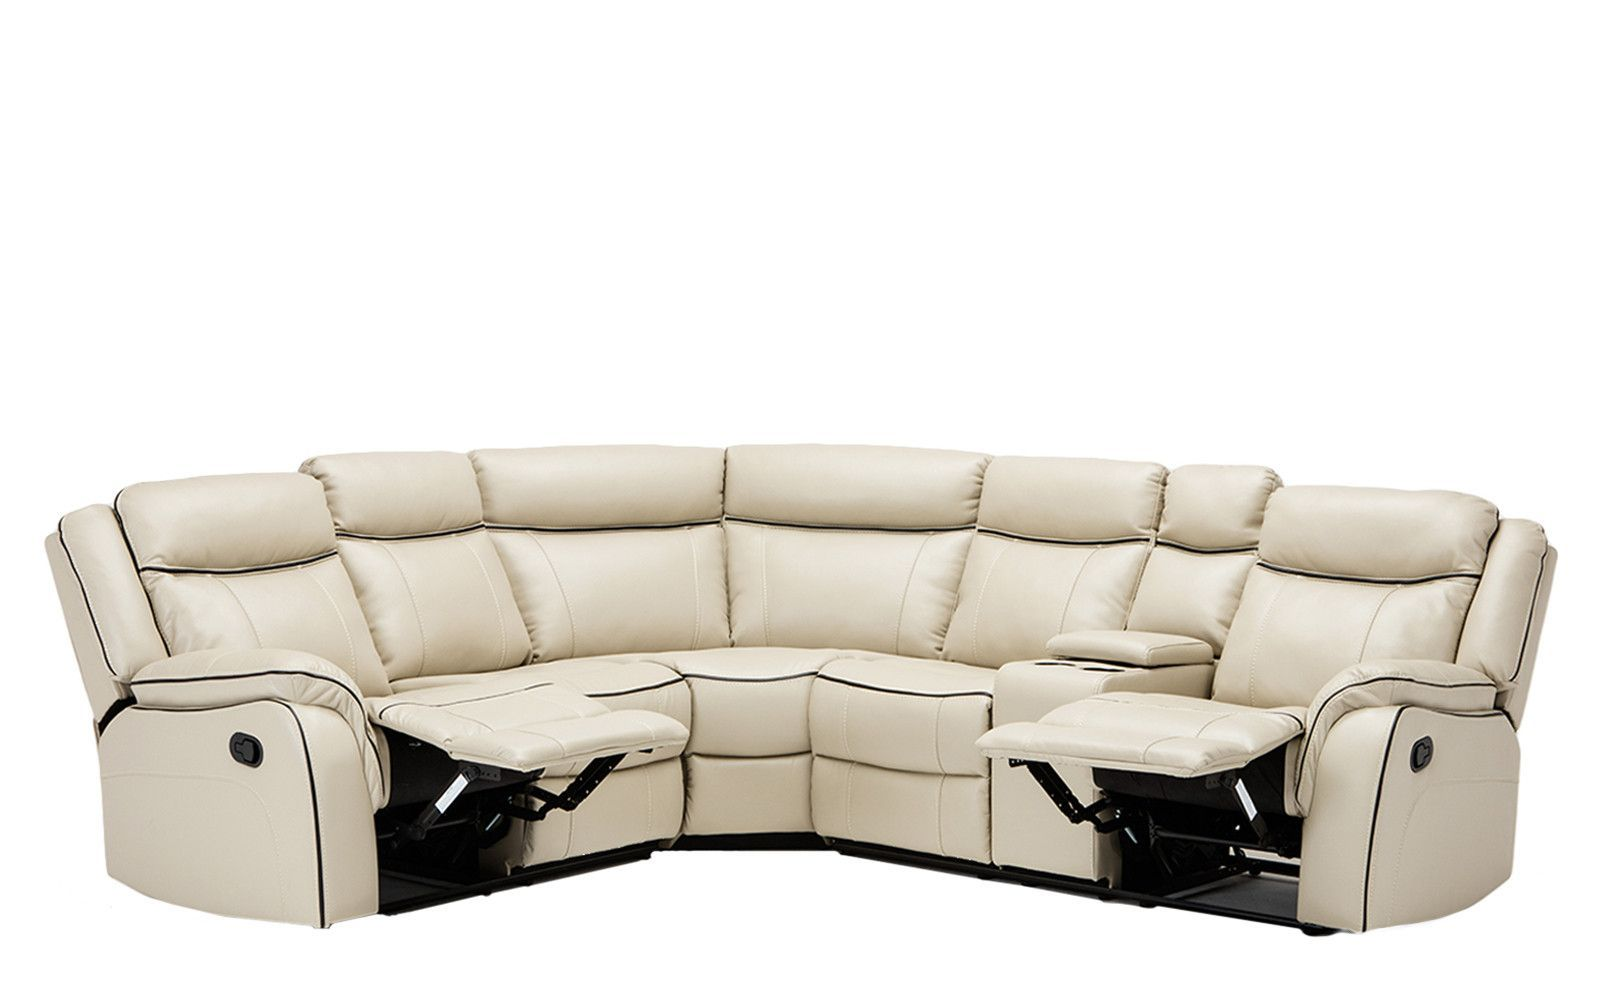 Paul Clic Bonded Leather Recliner Sectional